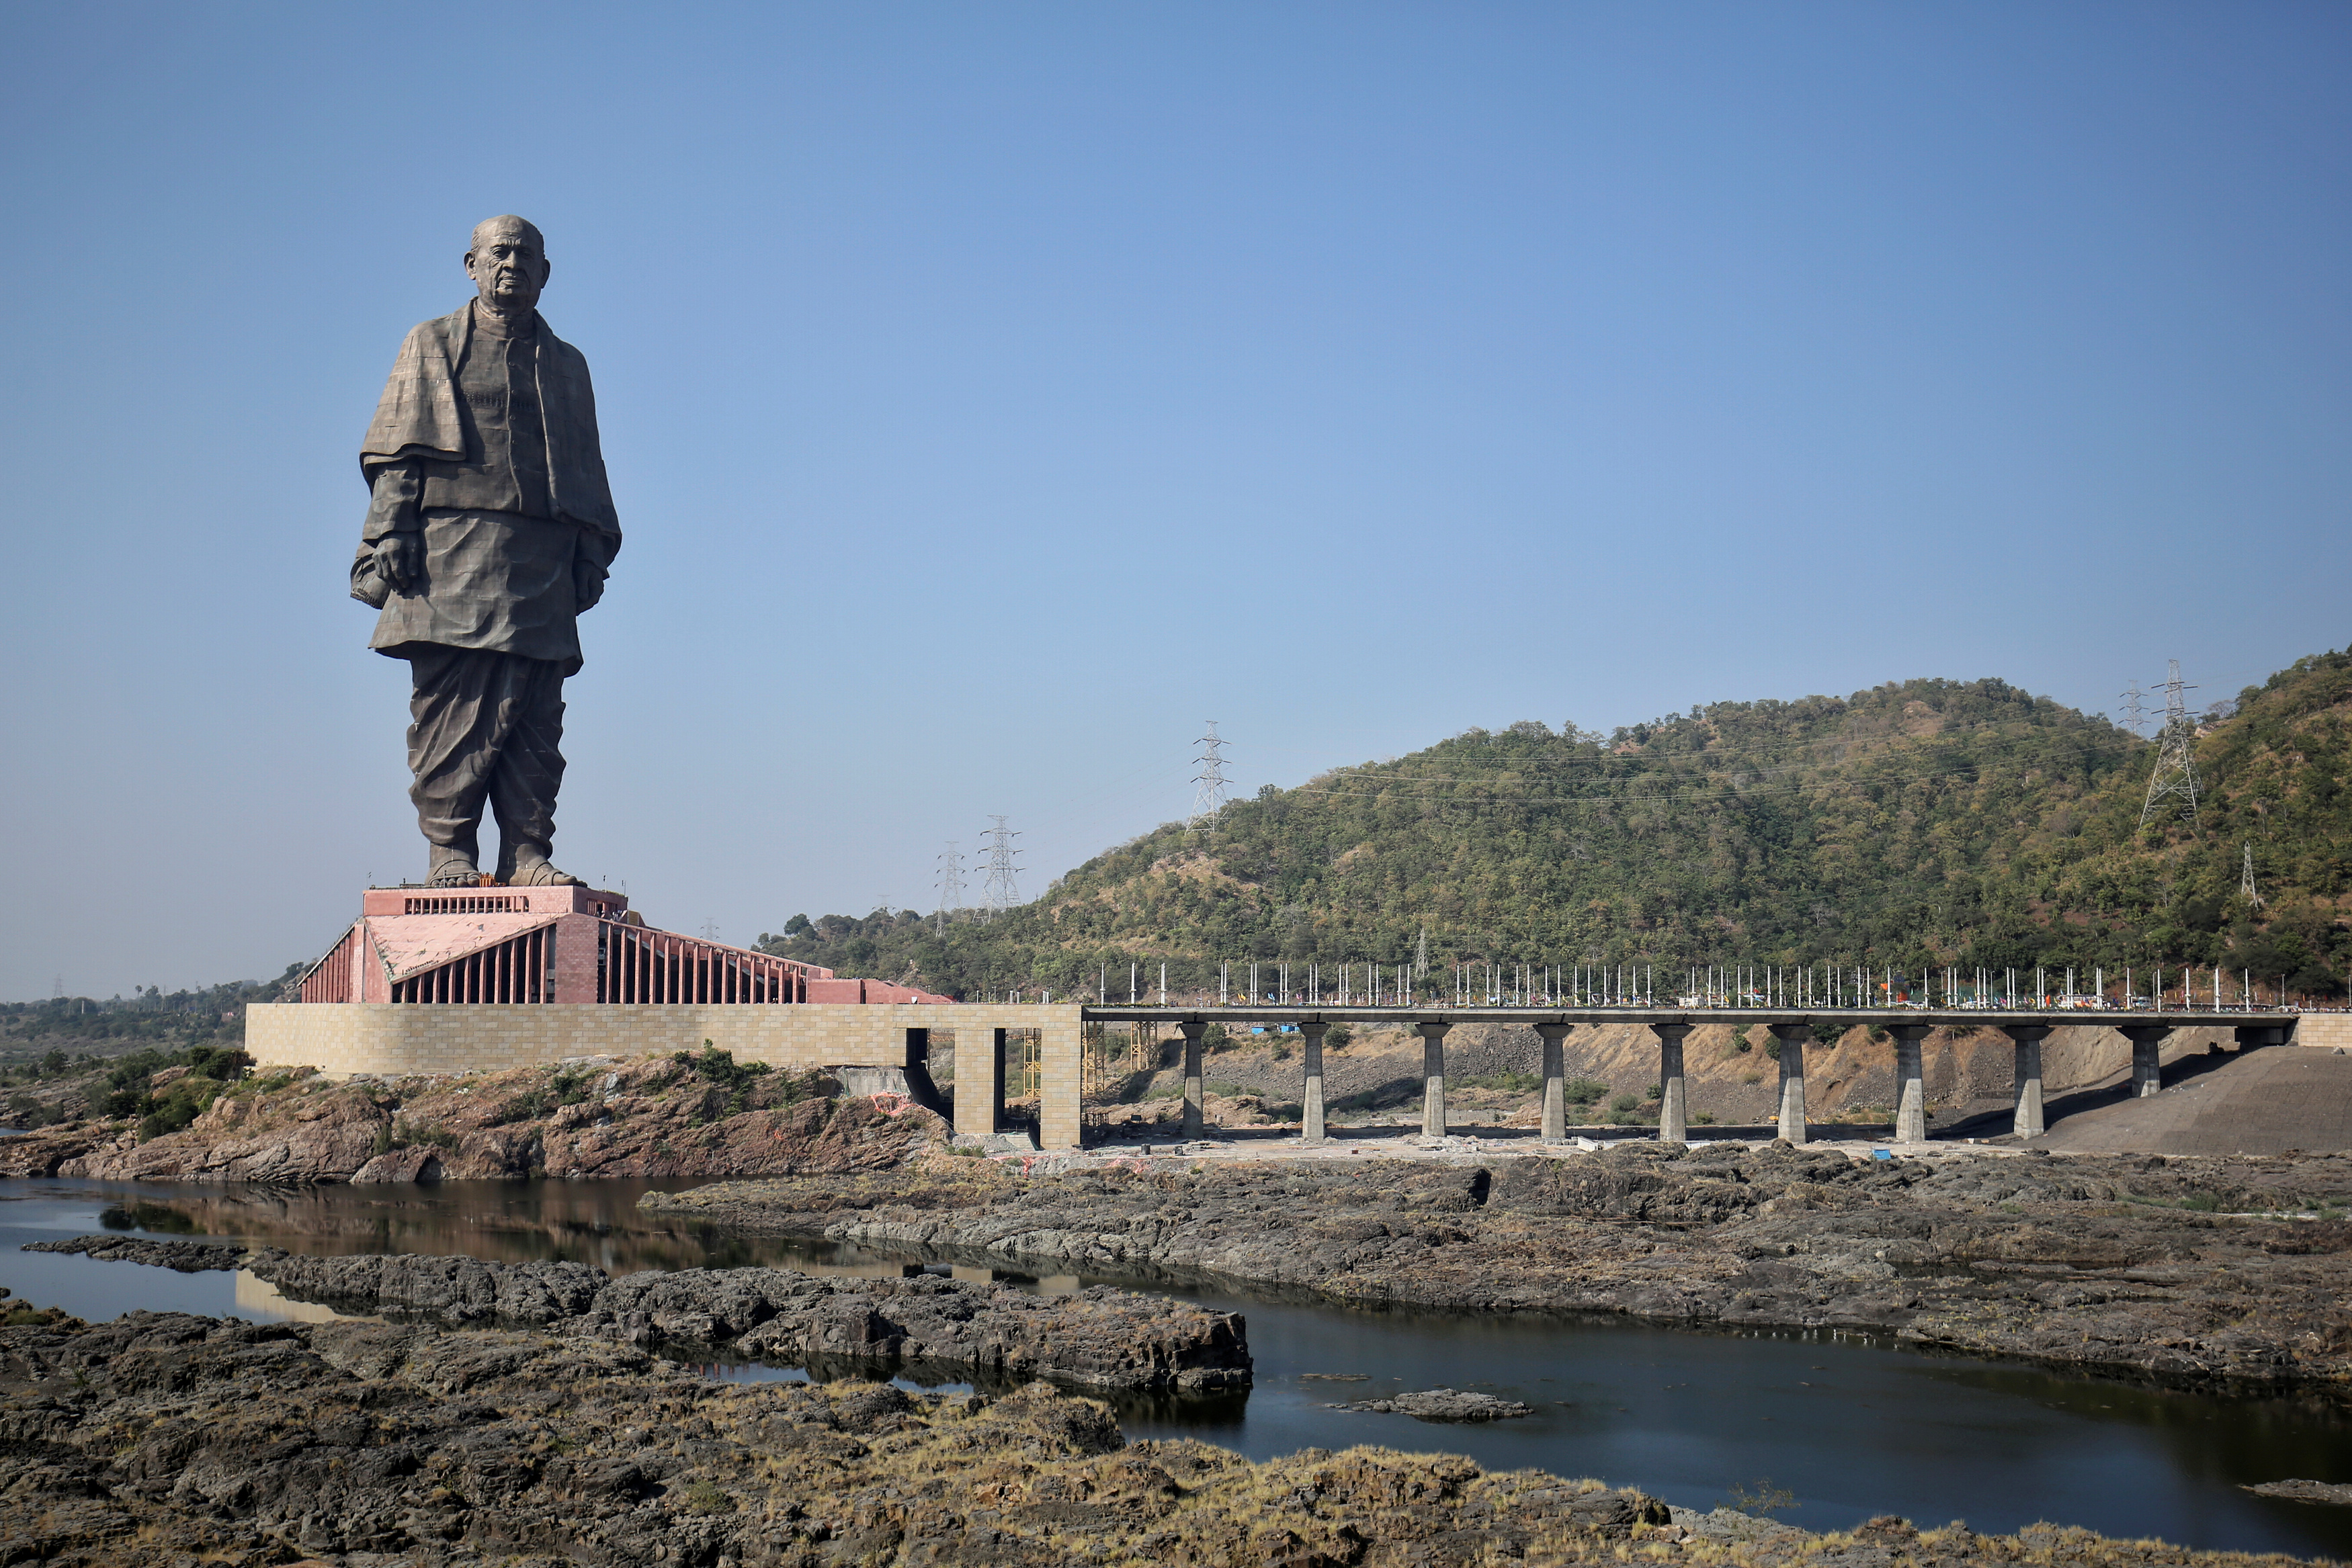 India's Statue of Unity is so big you can see it from space